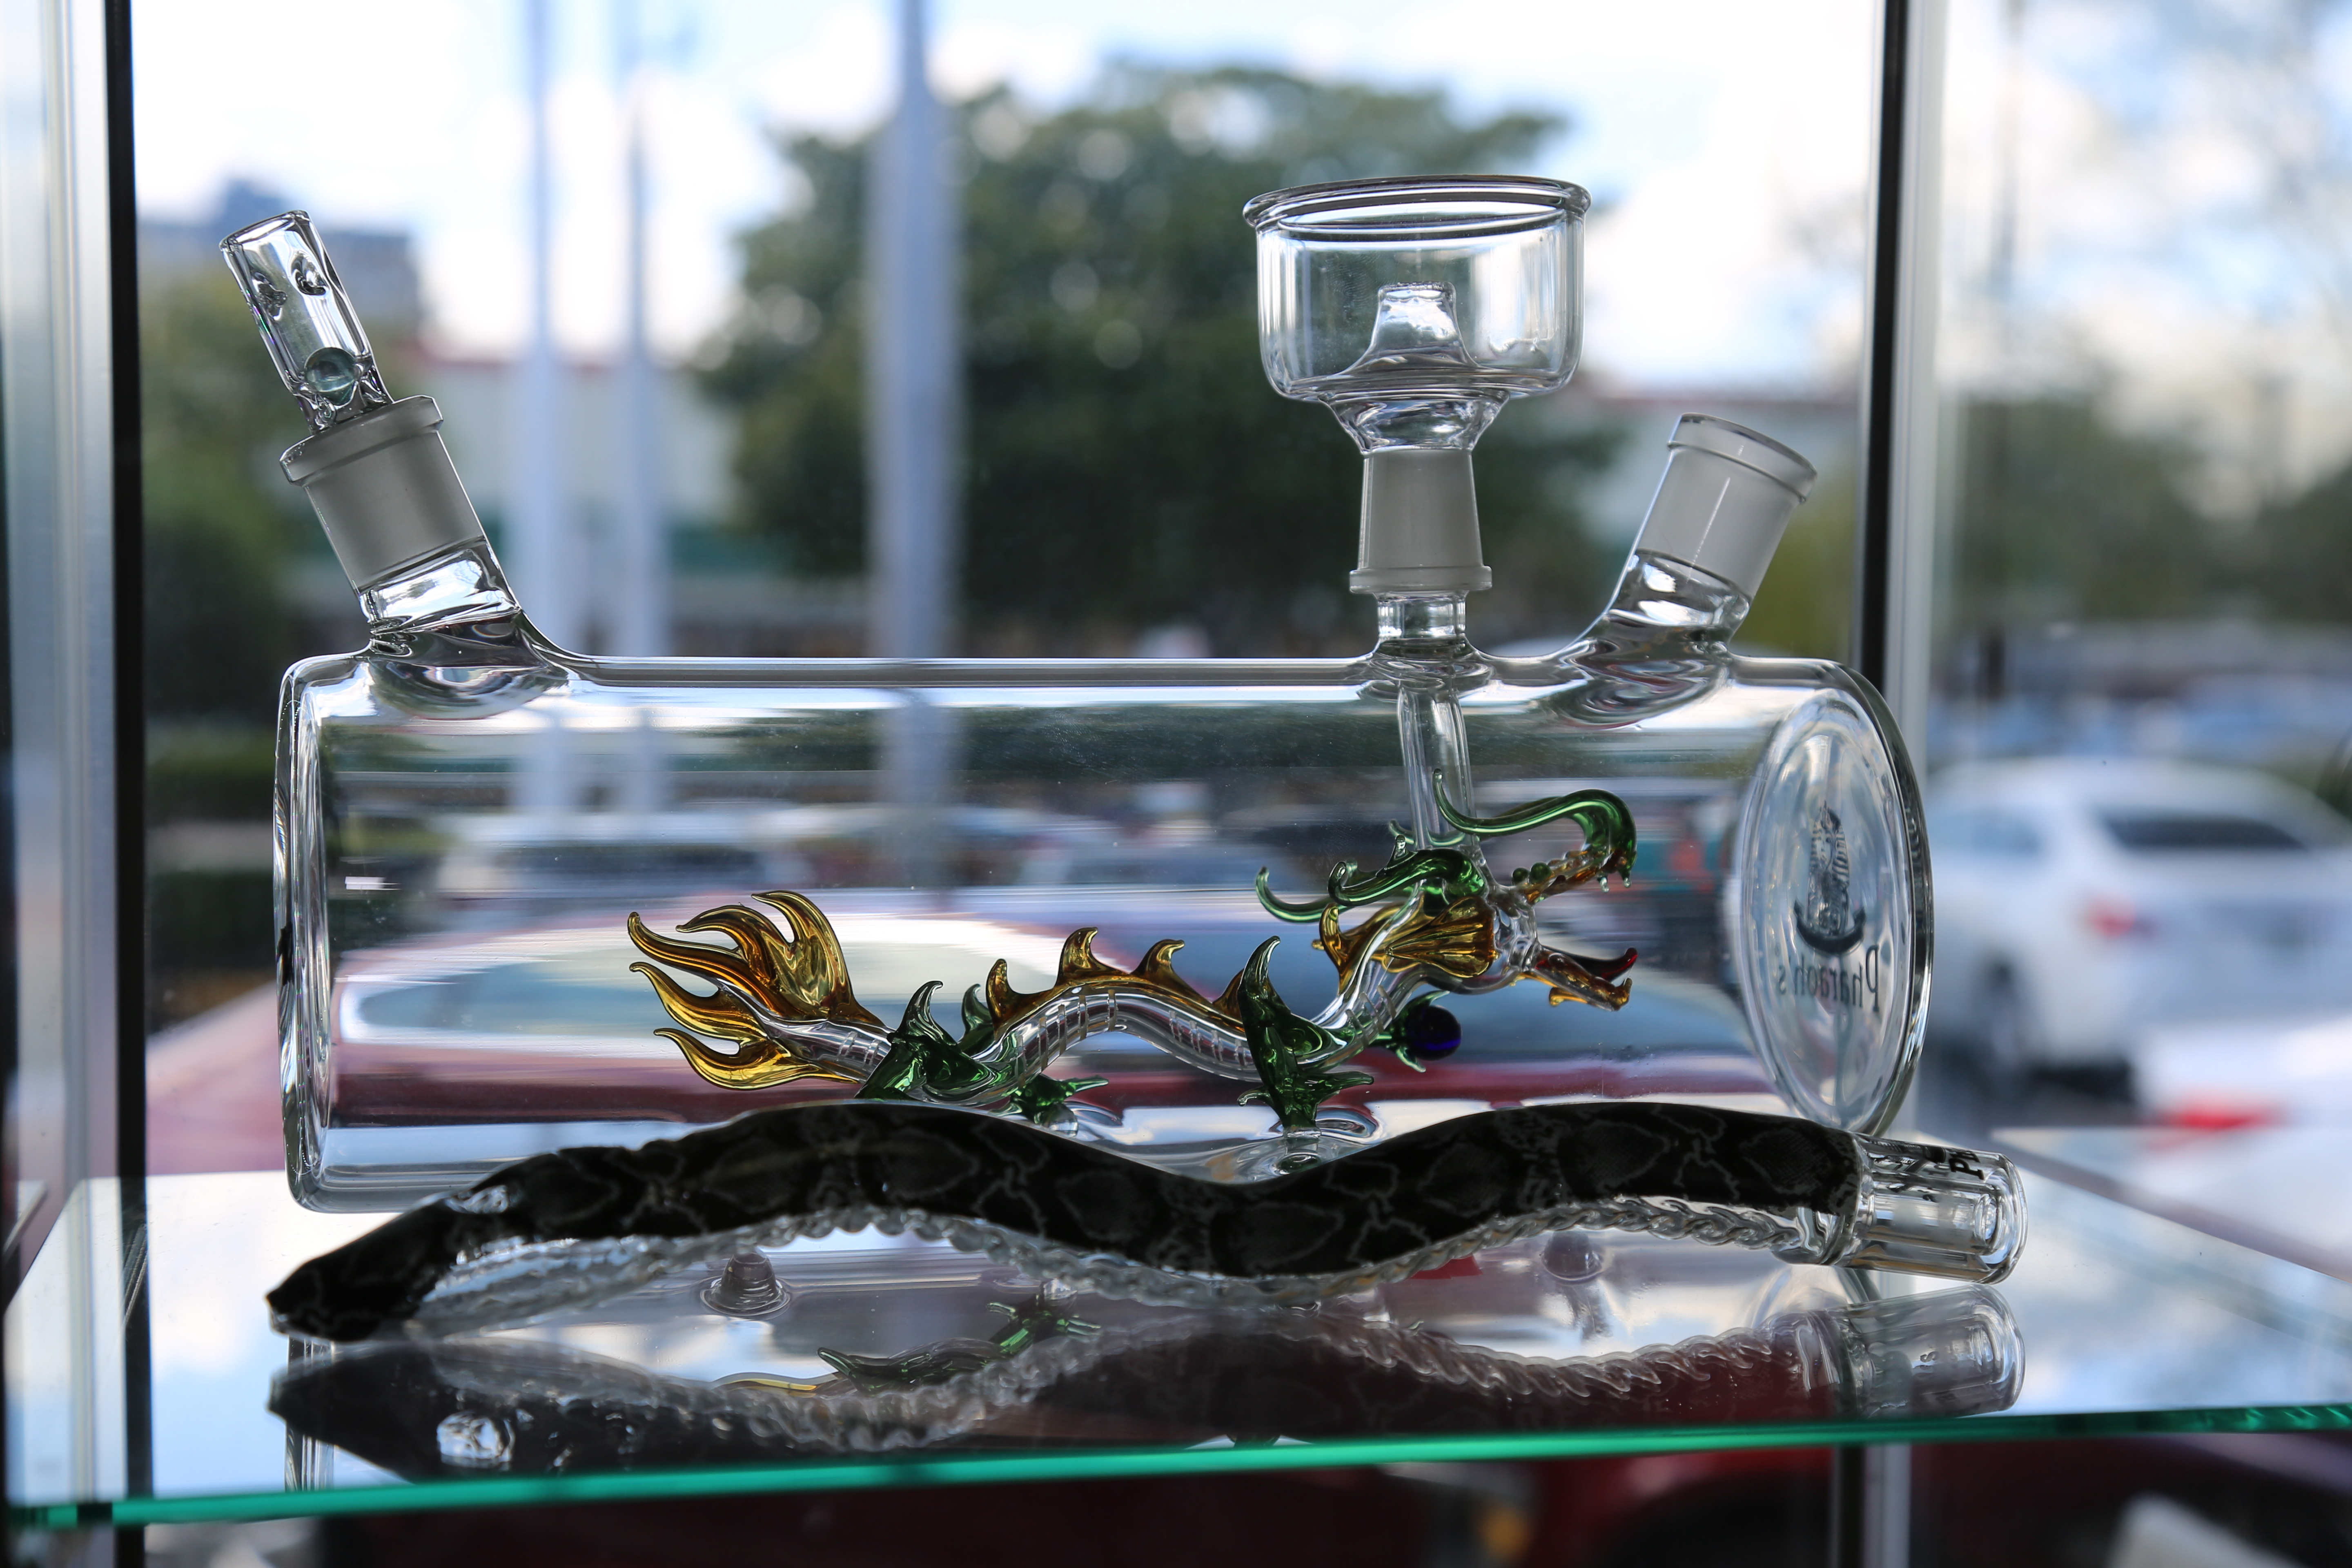 Water Pipe Percolators u2013 Different Kinds and Benefits & Smoke Glass Pipes that Enhance the Experience   Smokey News   Fort ...